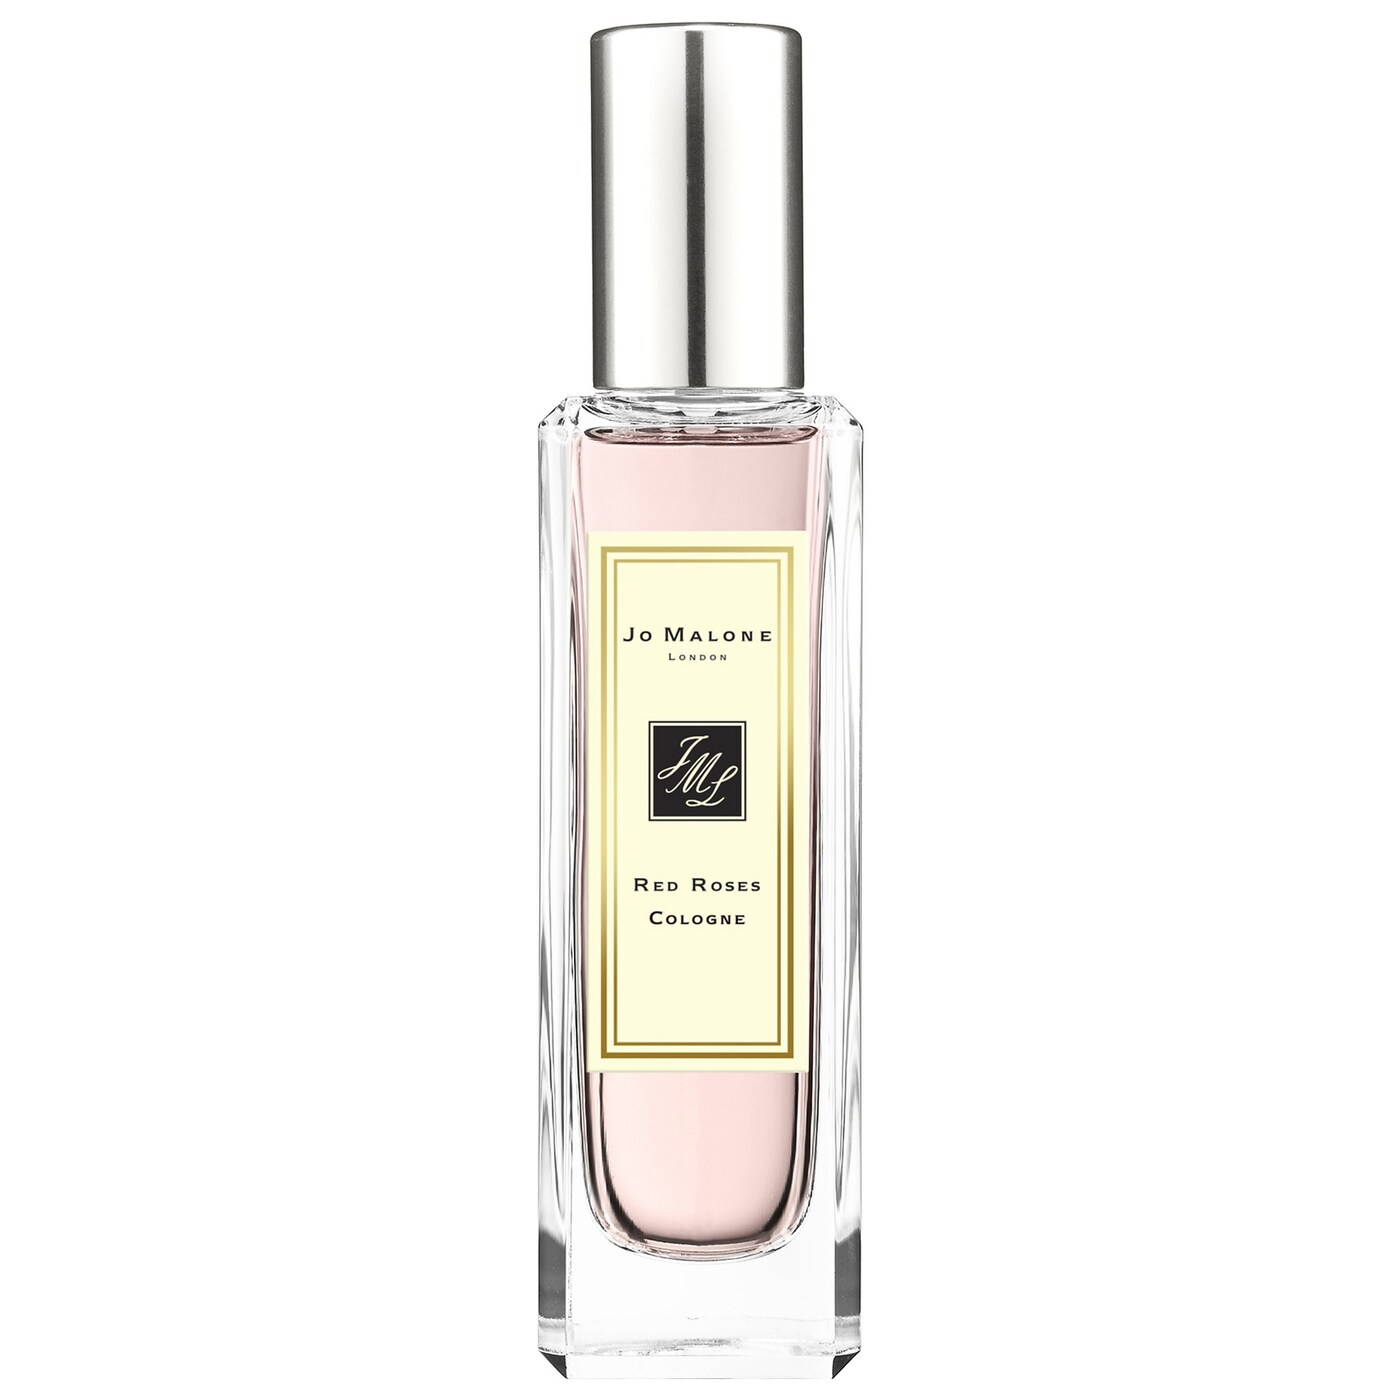 Jo Malone London Red Roses Cologne 30 ml